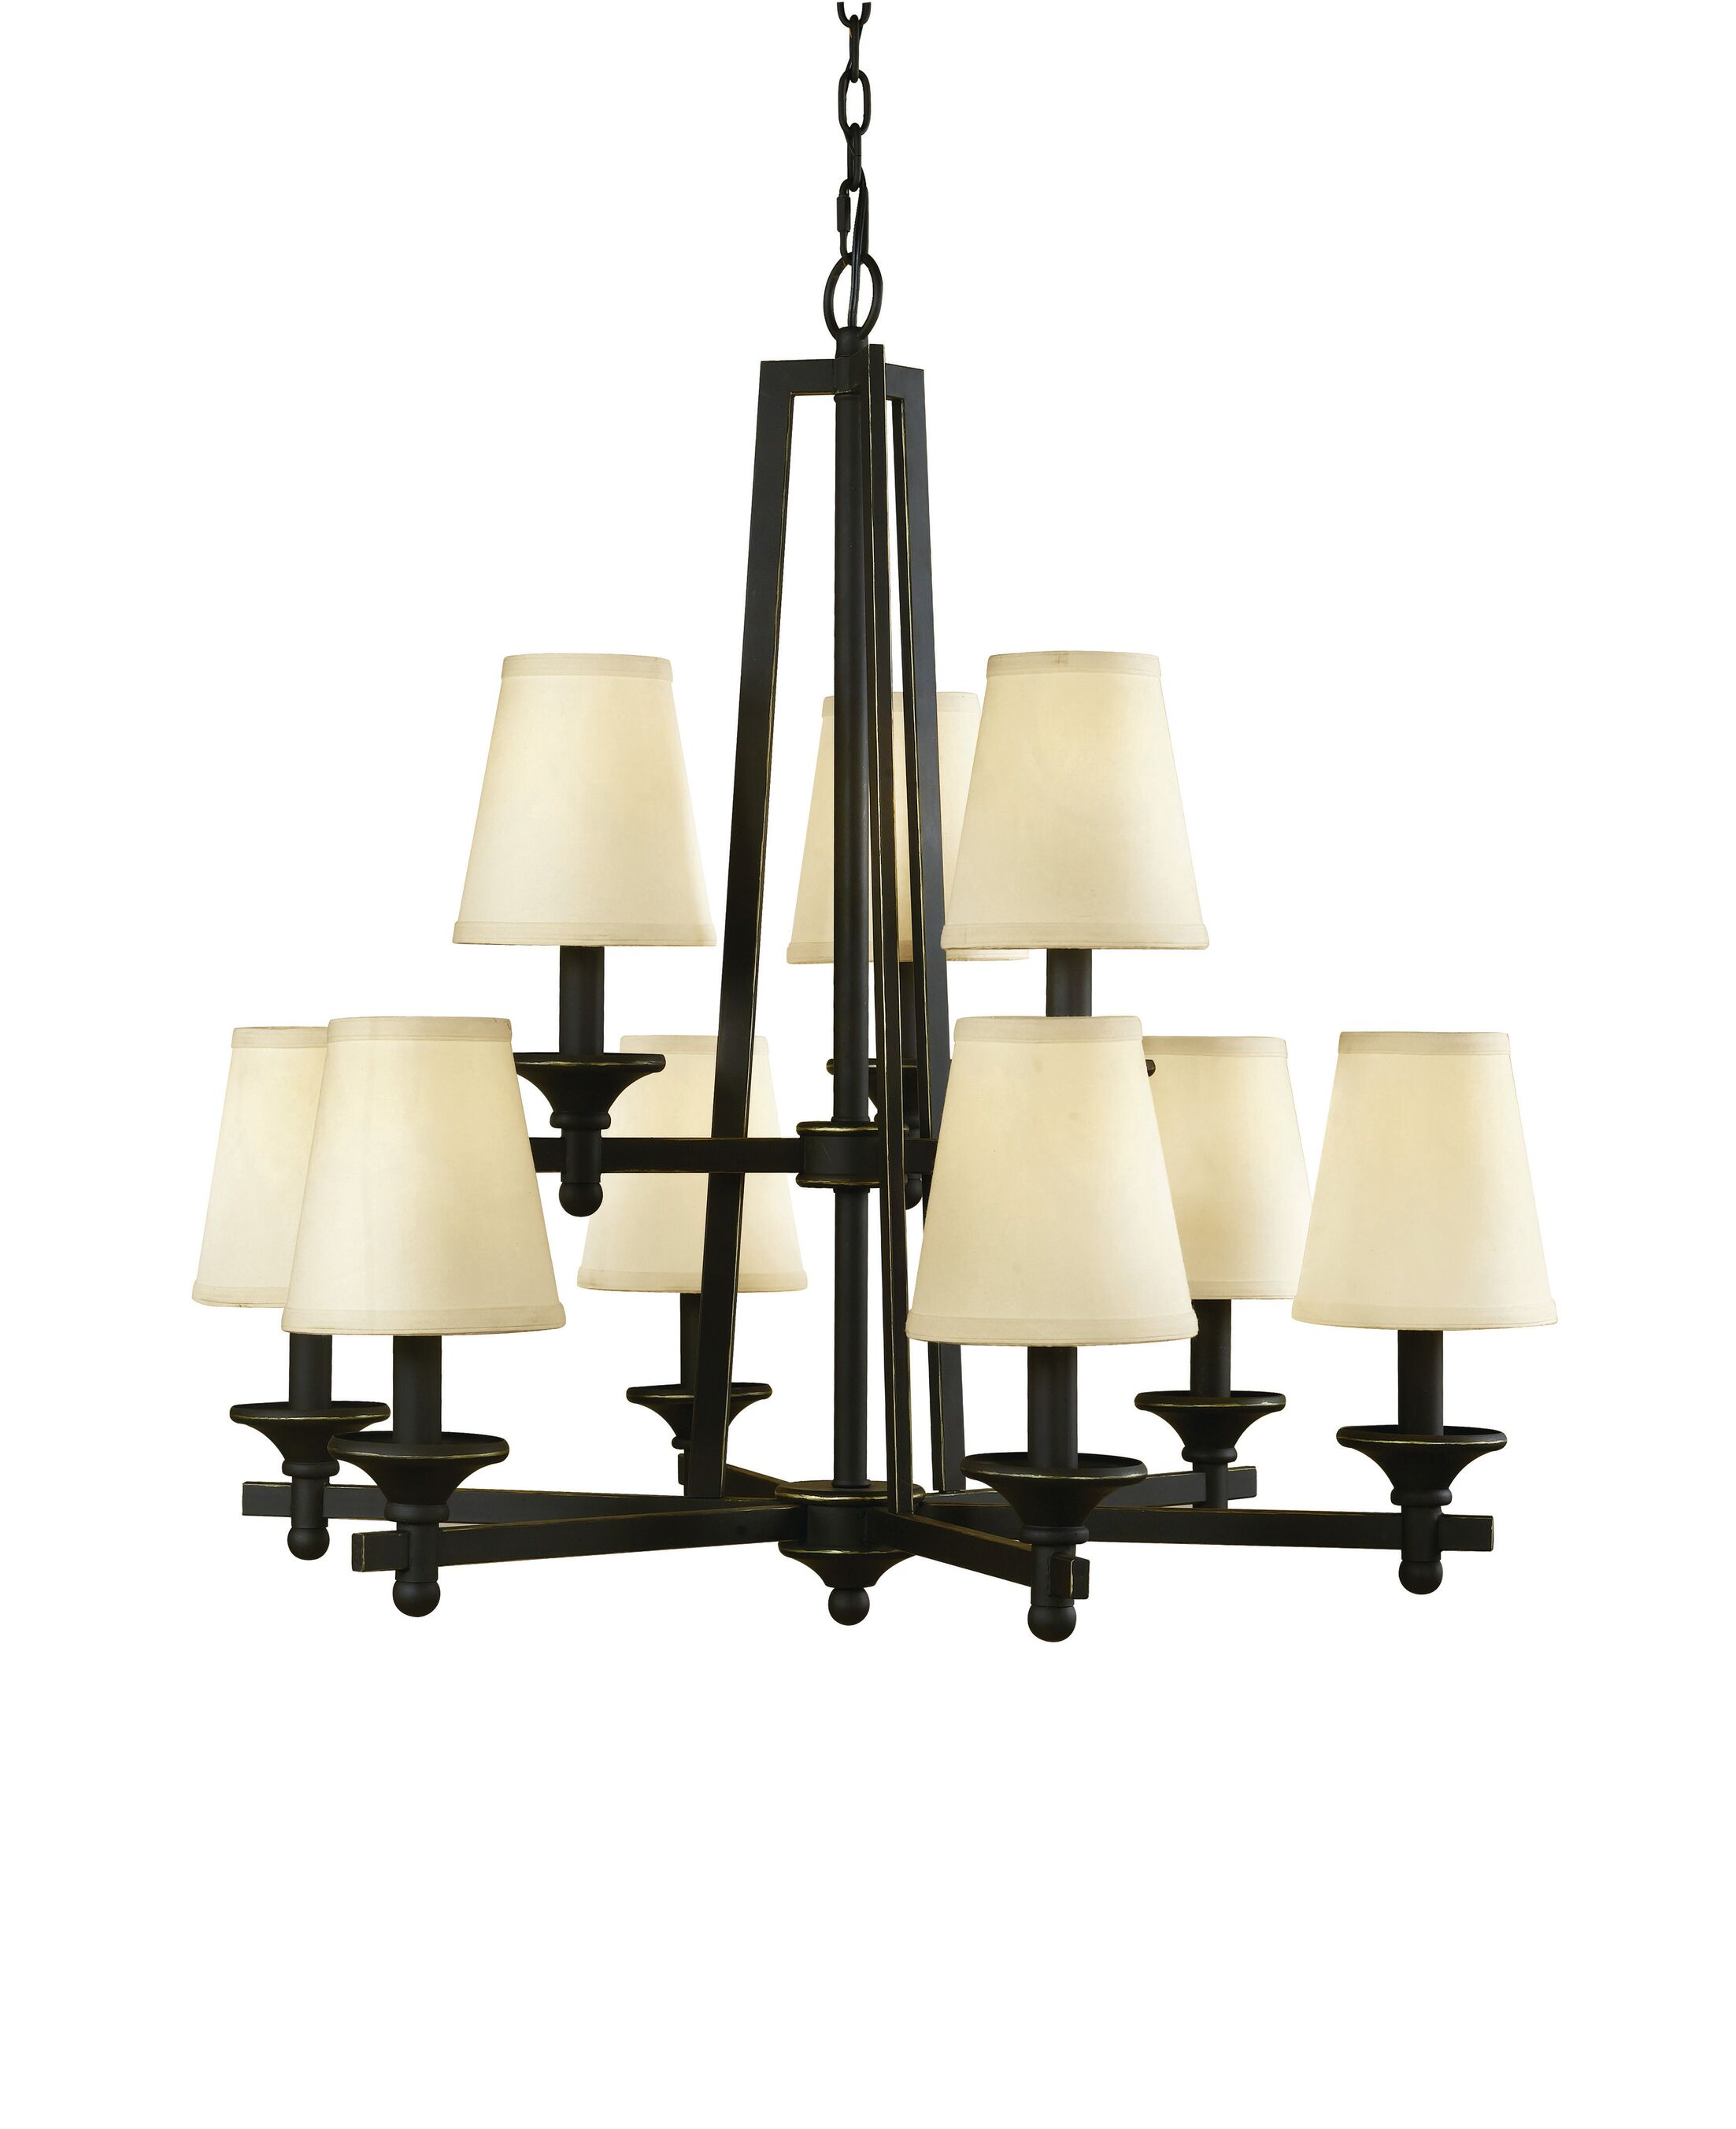 Baxter 9-Light Shaded Chandelier